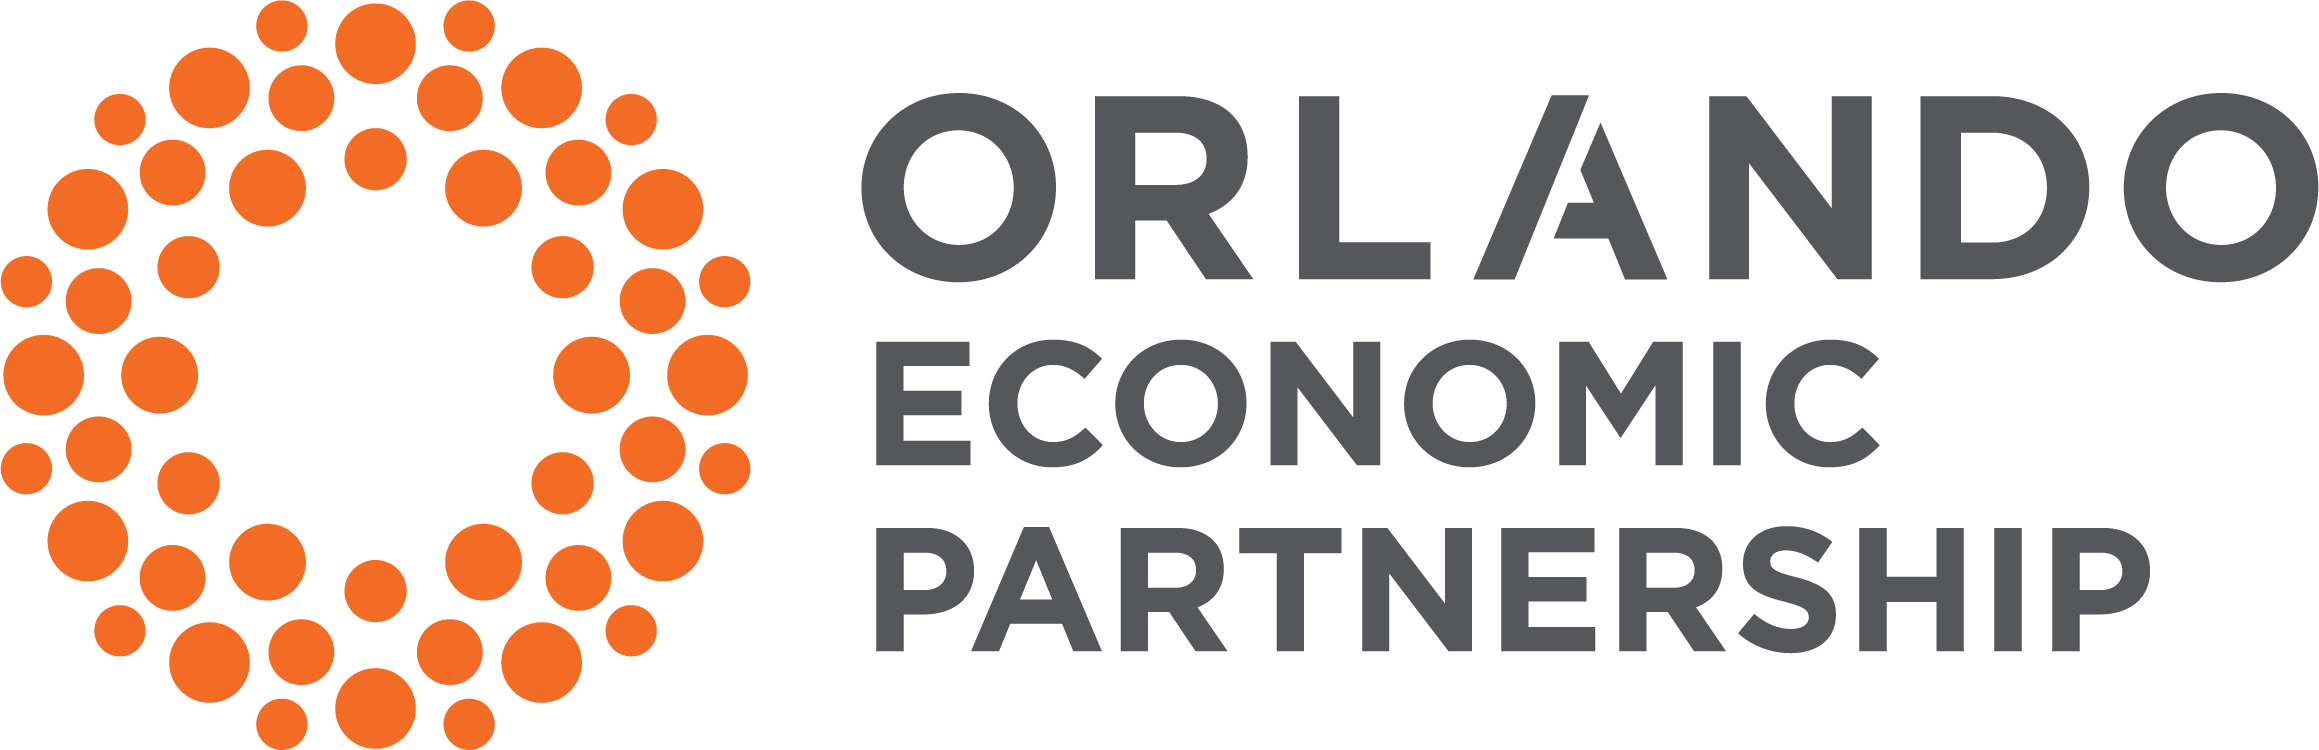 Orlando Economic Partnership